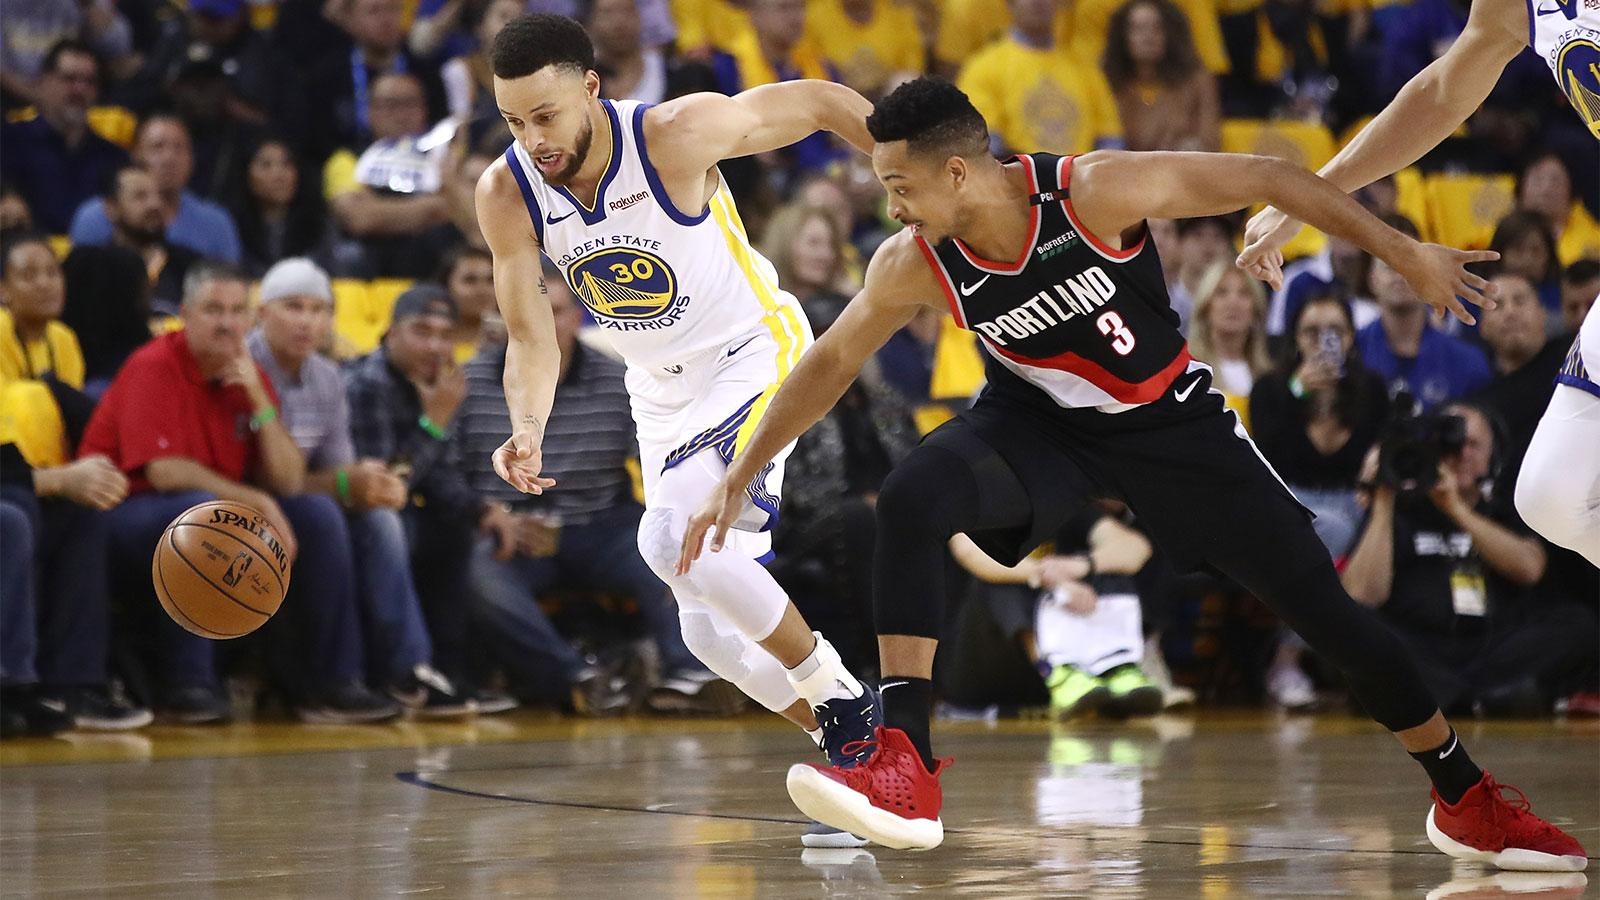 Sonoma vs. Willamette Winemakers Bet a Ton (of Grapes) on Warriors-Blazers in Pinot Throwdown